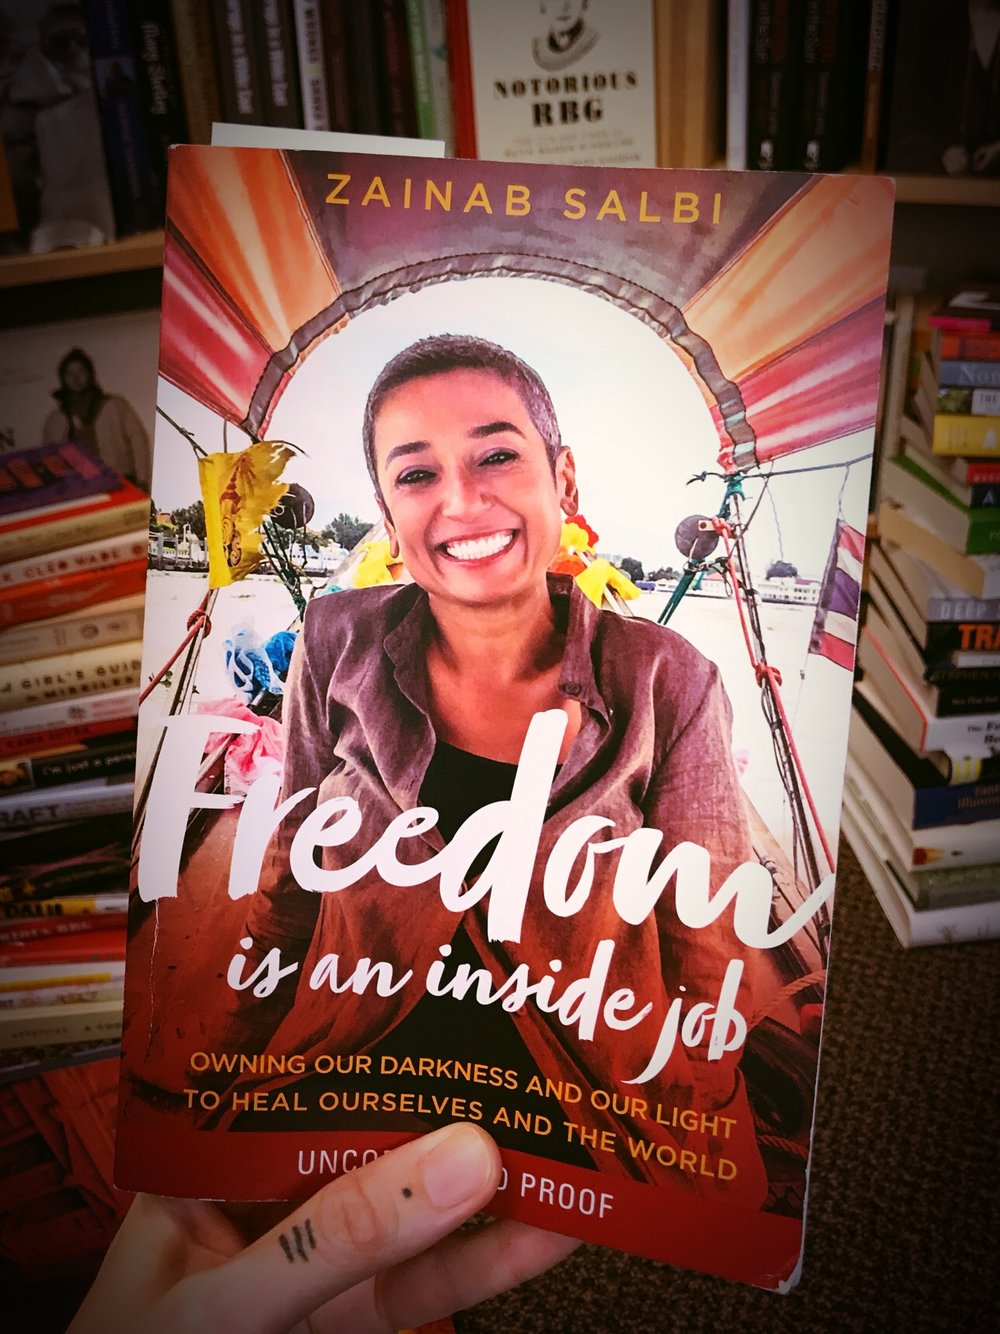 Freedom is an inside job by Zainab Salbi